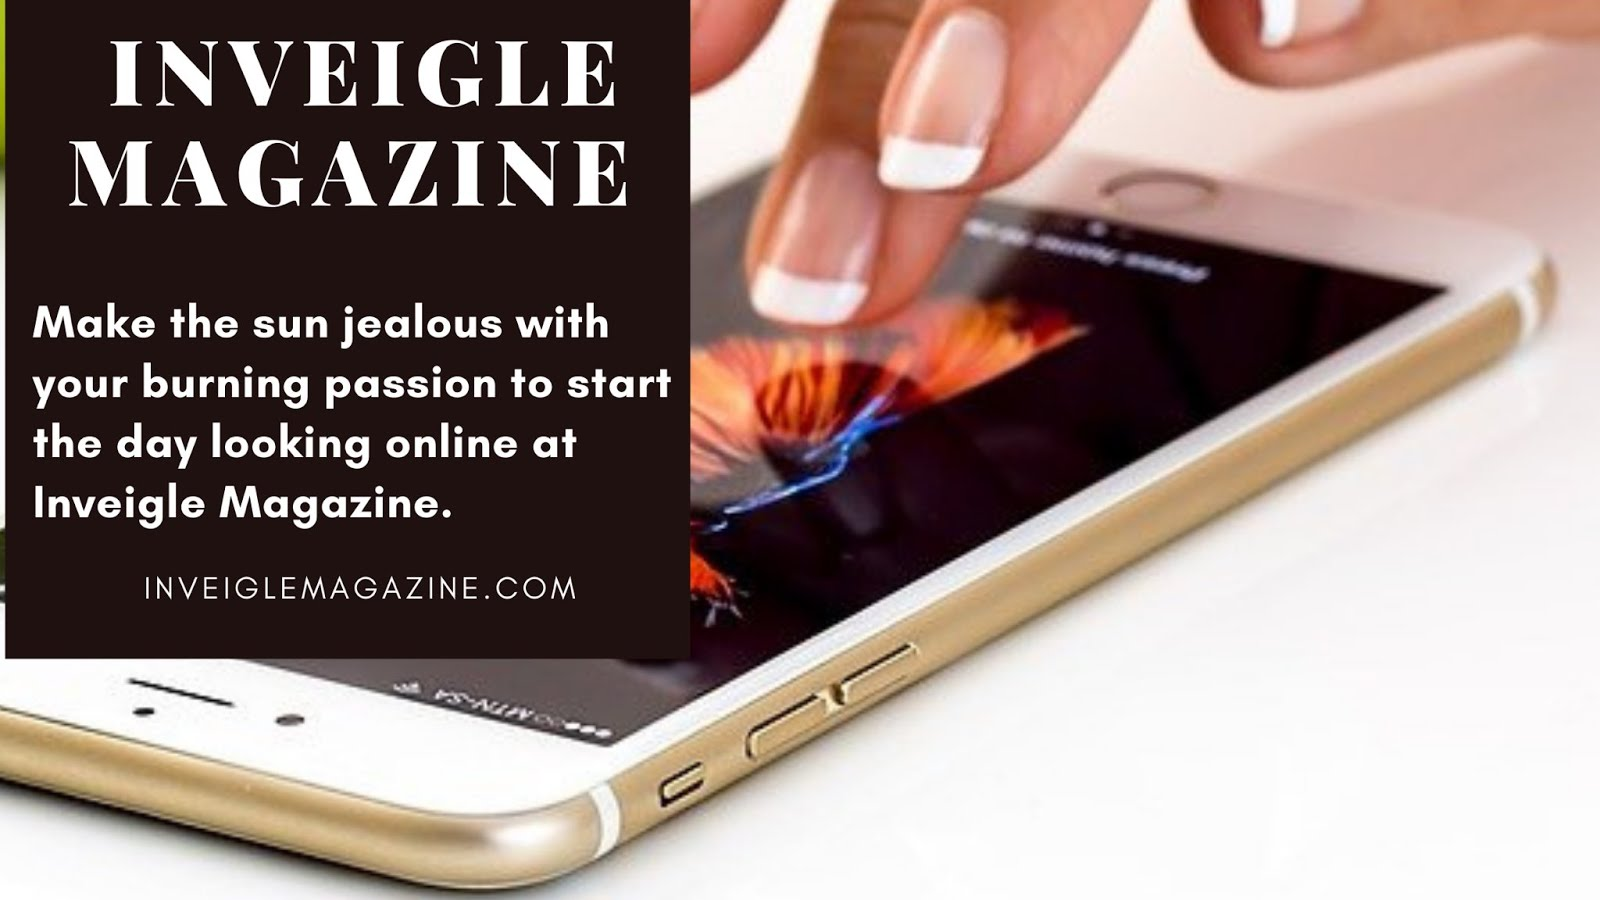 Inveigle Magazine | Lifestyle, Fashion & Beauty